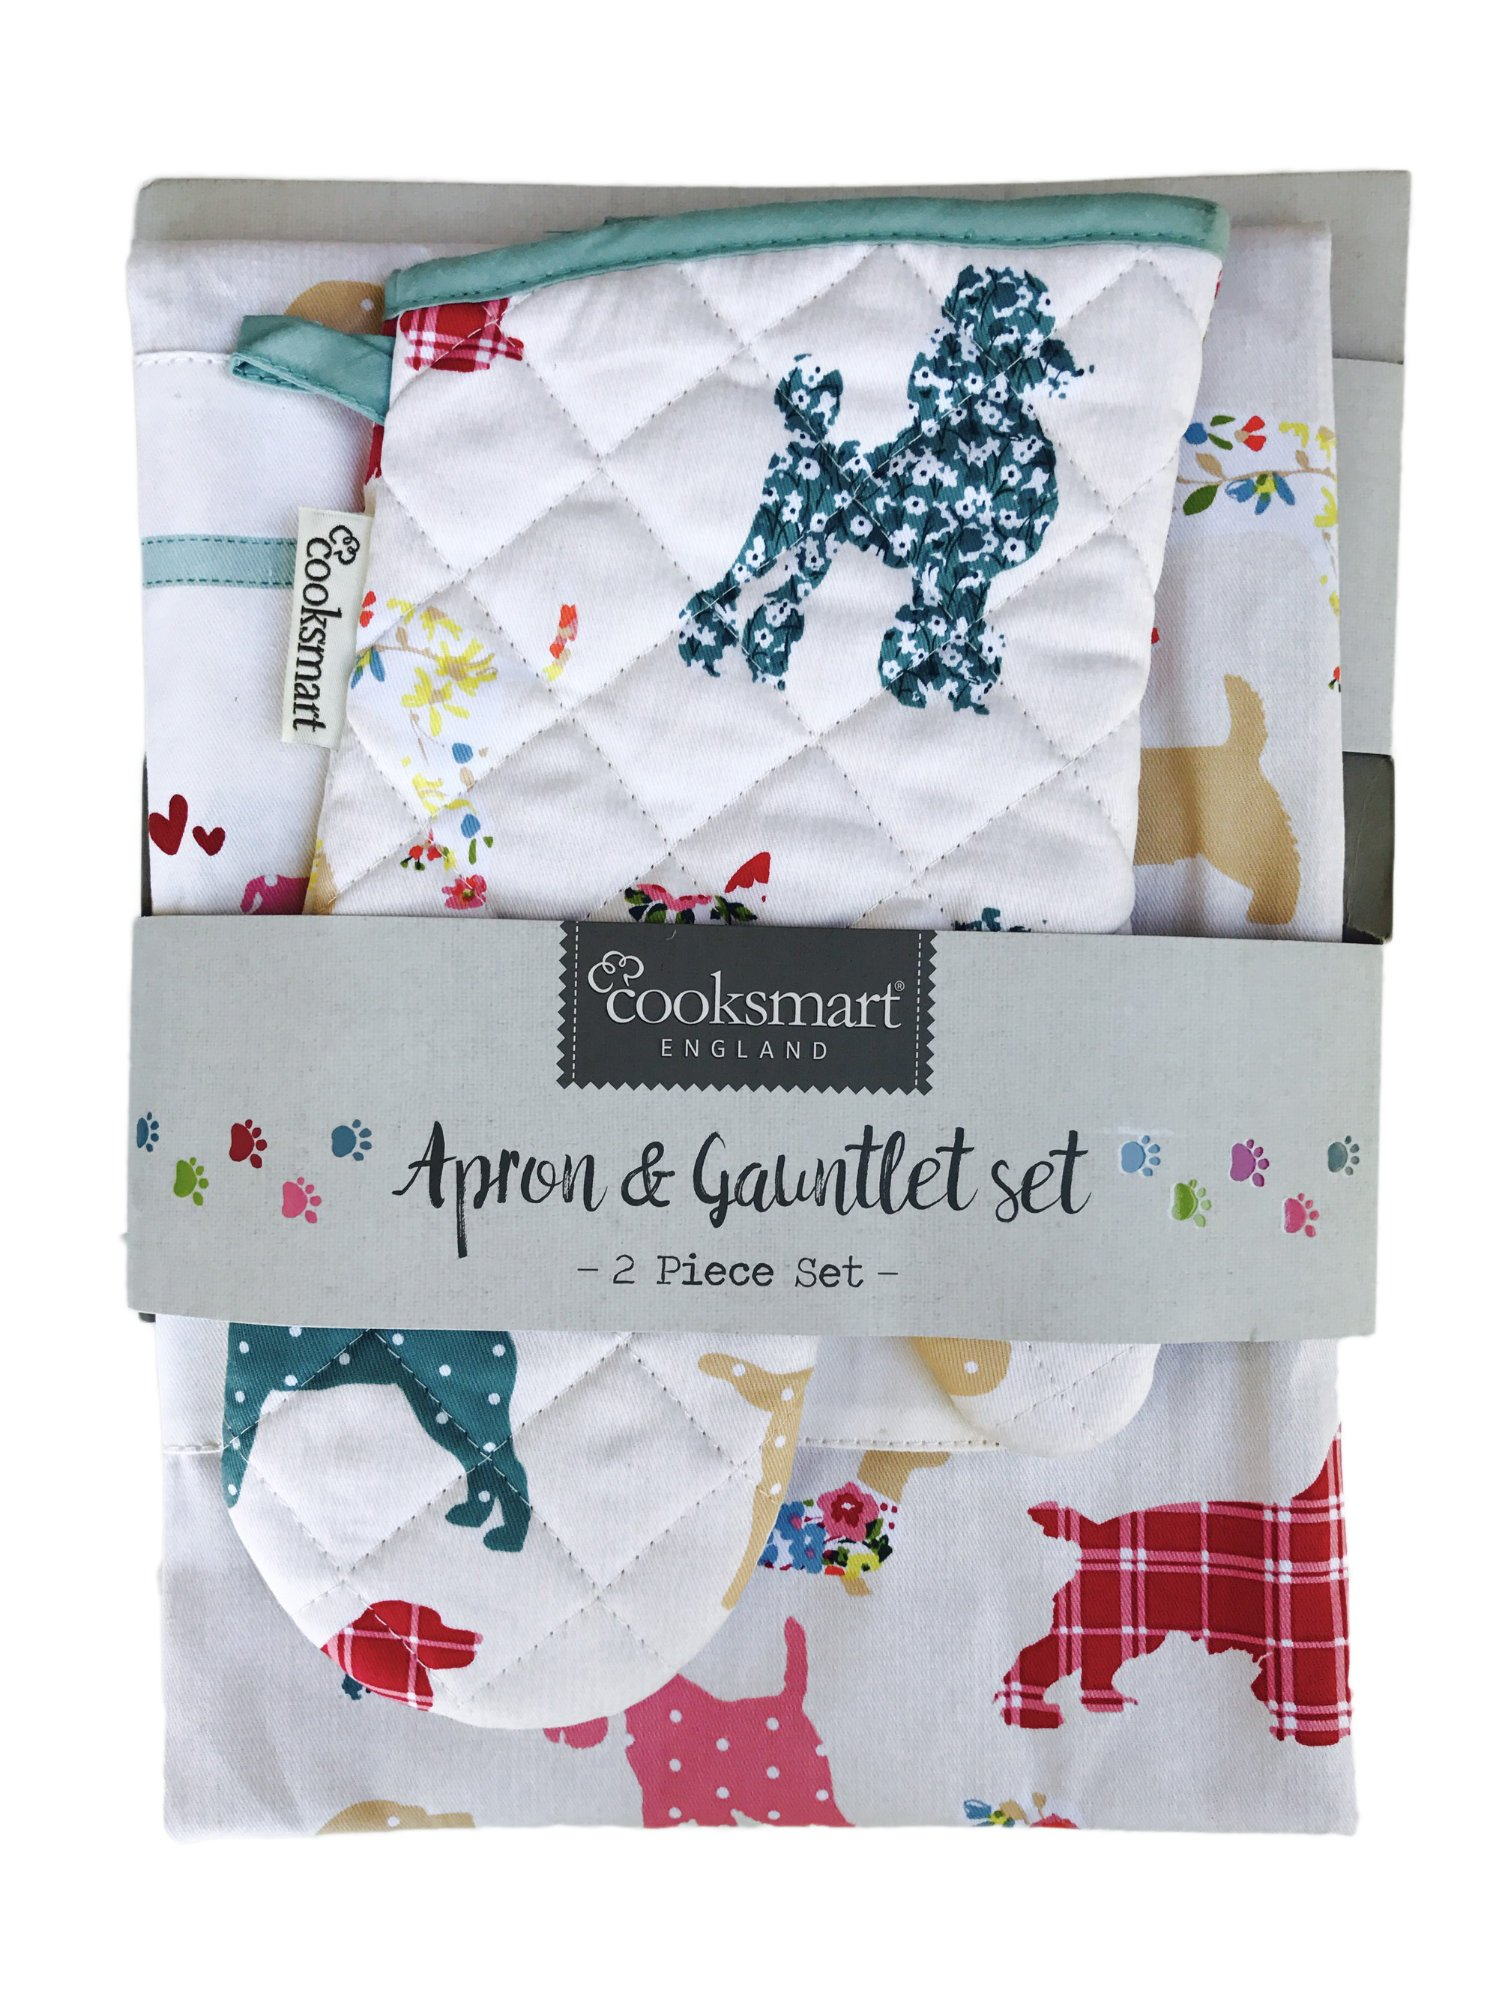 Cooksmart Patchwork Dogs Apron And Gauntlet Oven Mitt Set